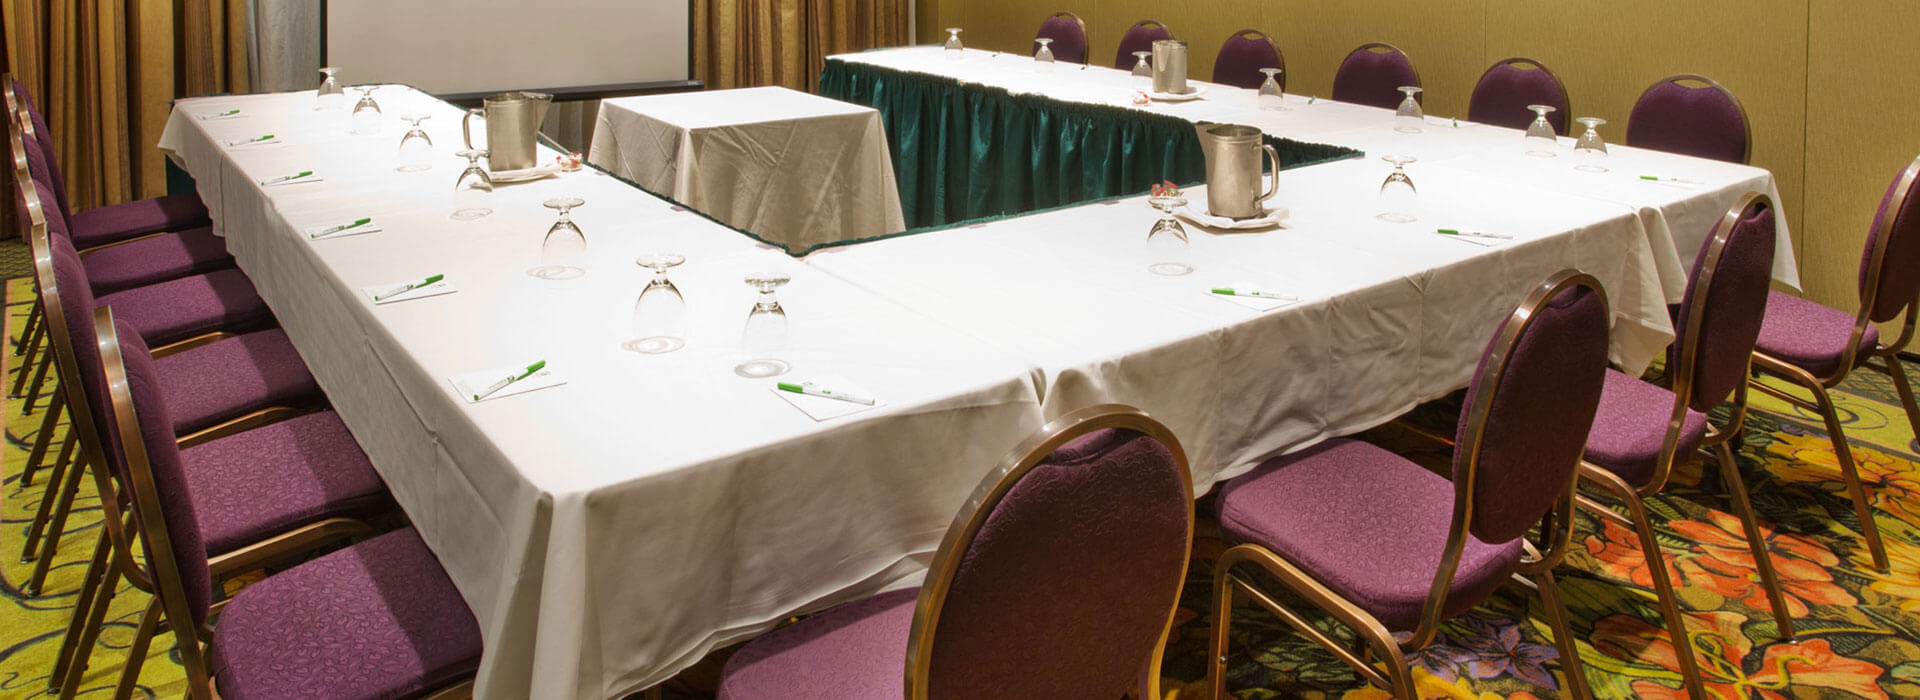 Meeting and conference space - the Grouse Room at the Holiday Inn North Vancouver